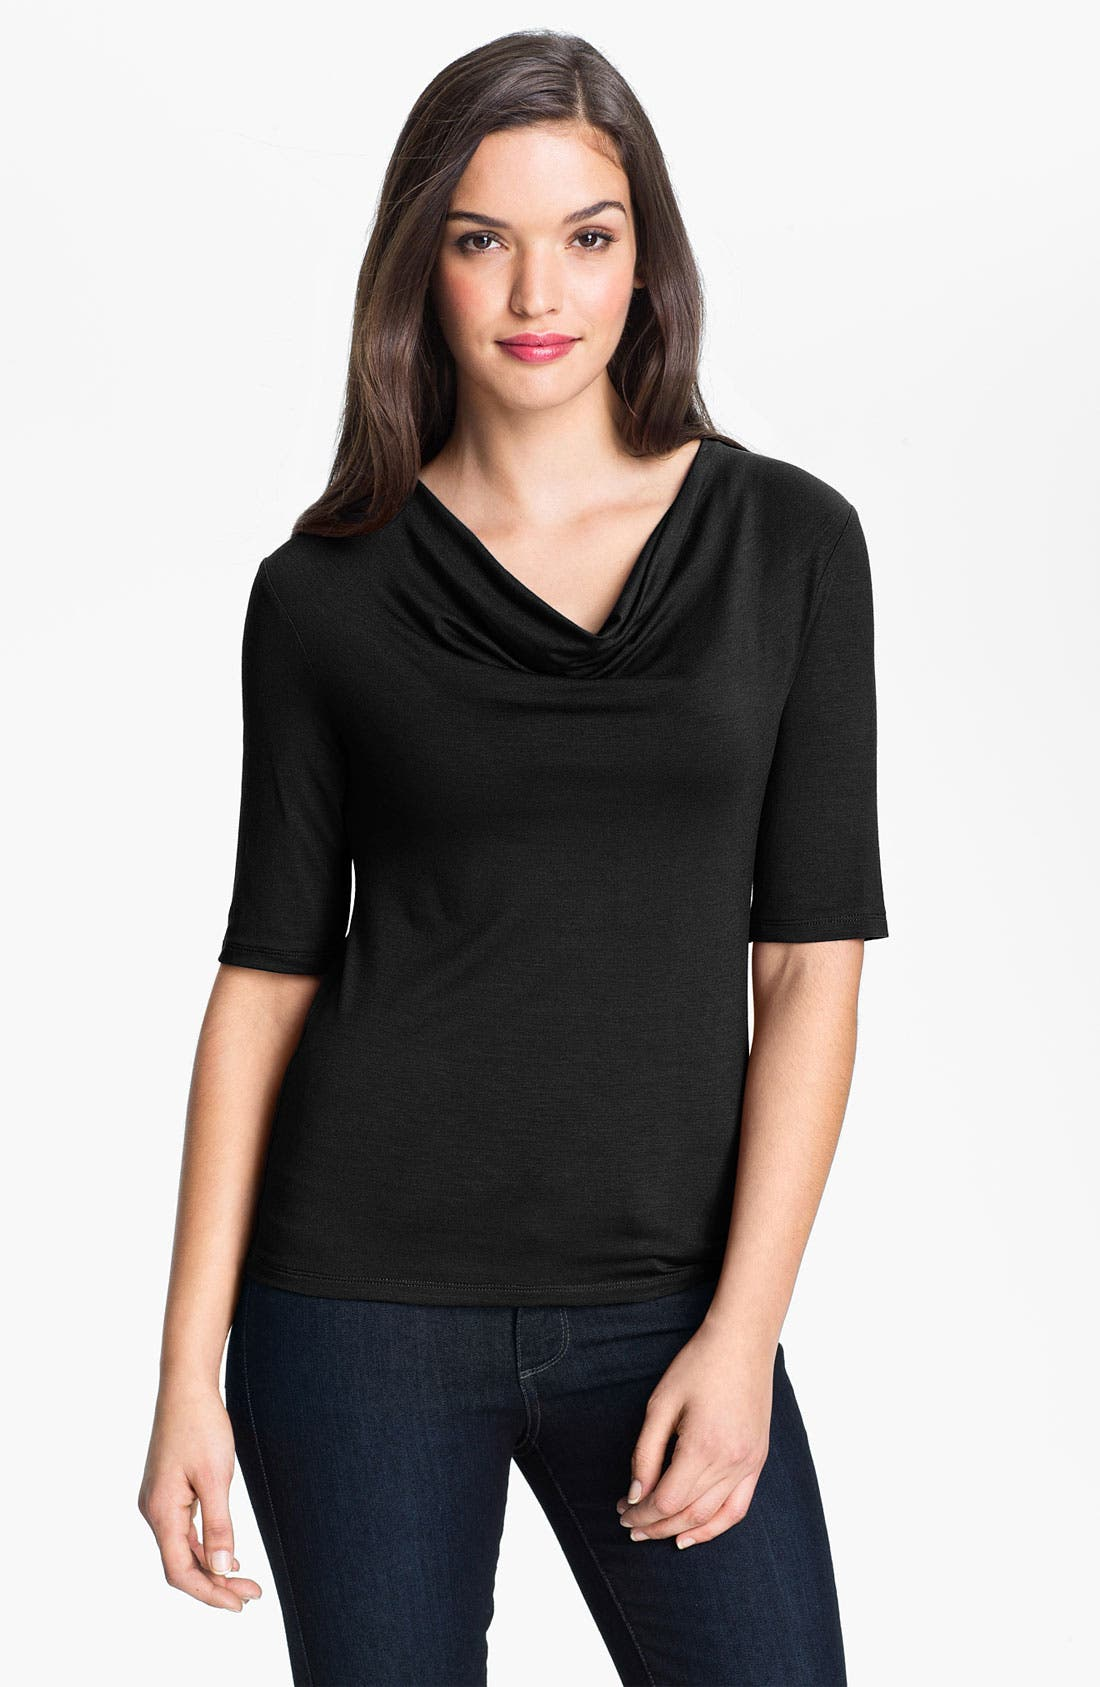 Main Image - Purity Cowl Neck Elbow Sleeve Top